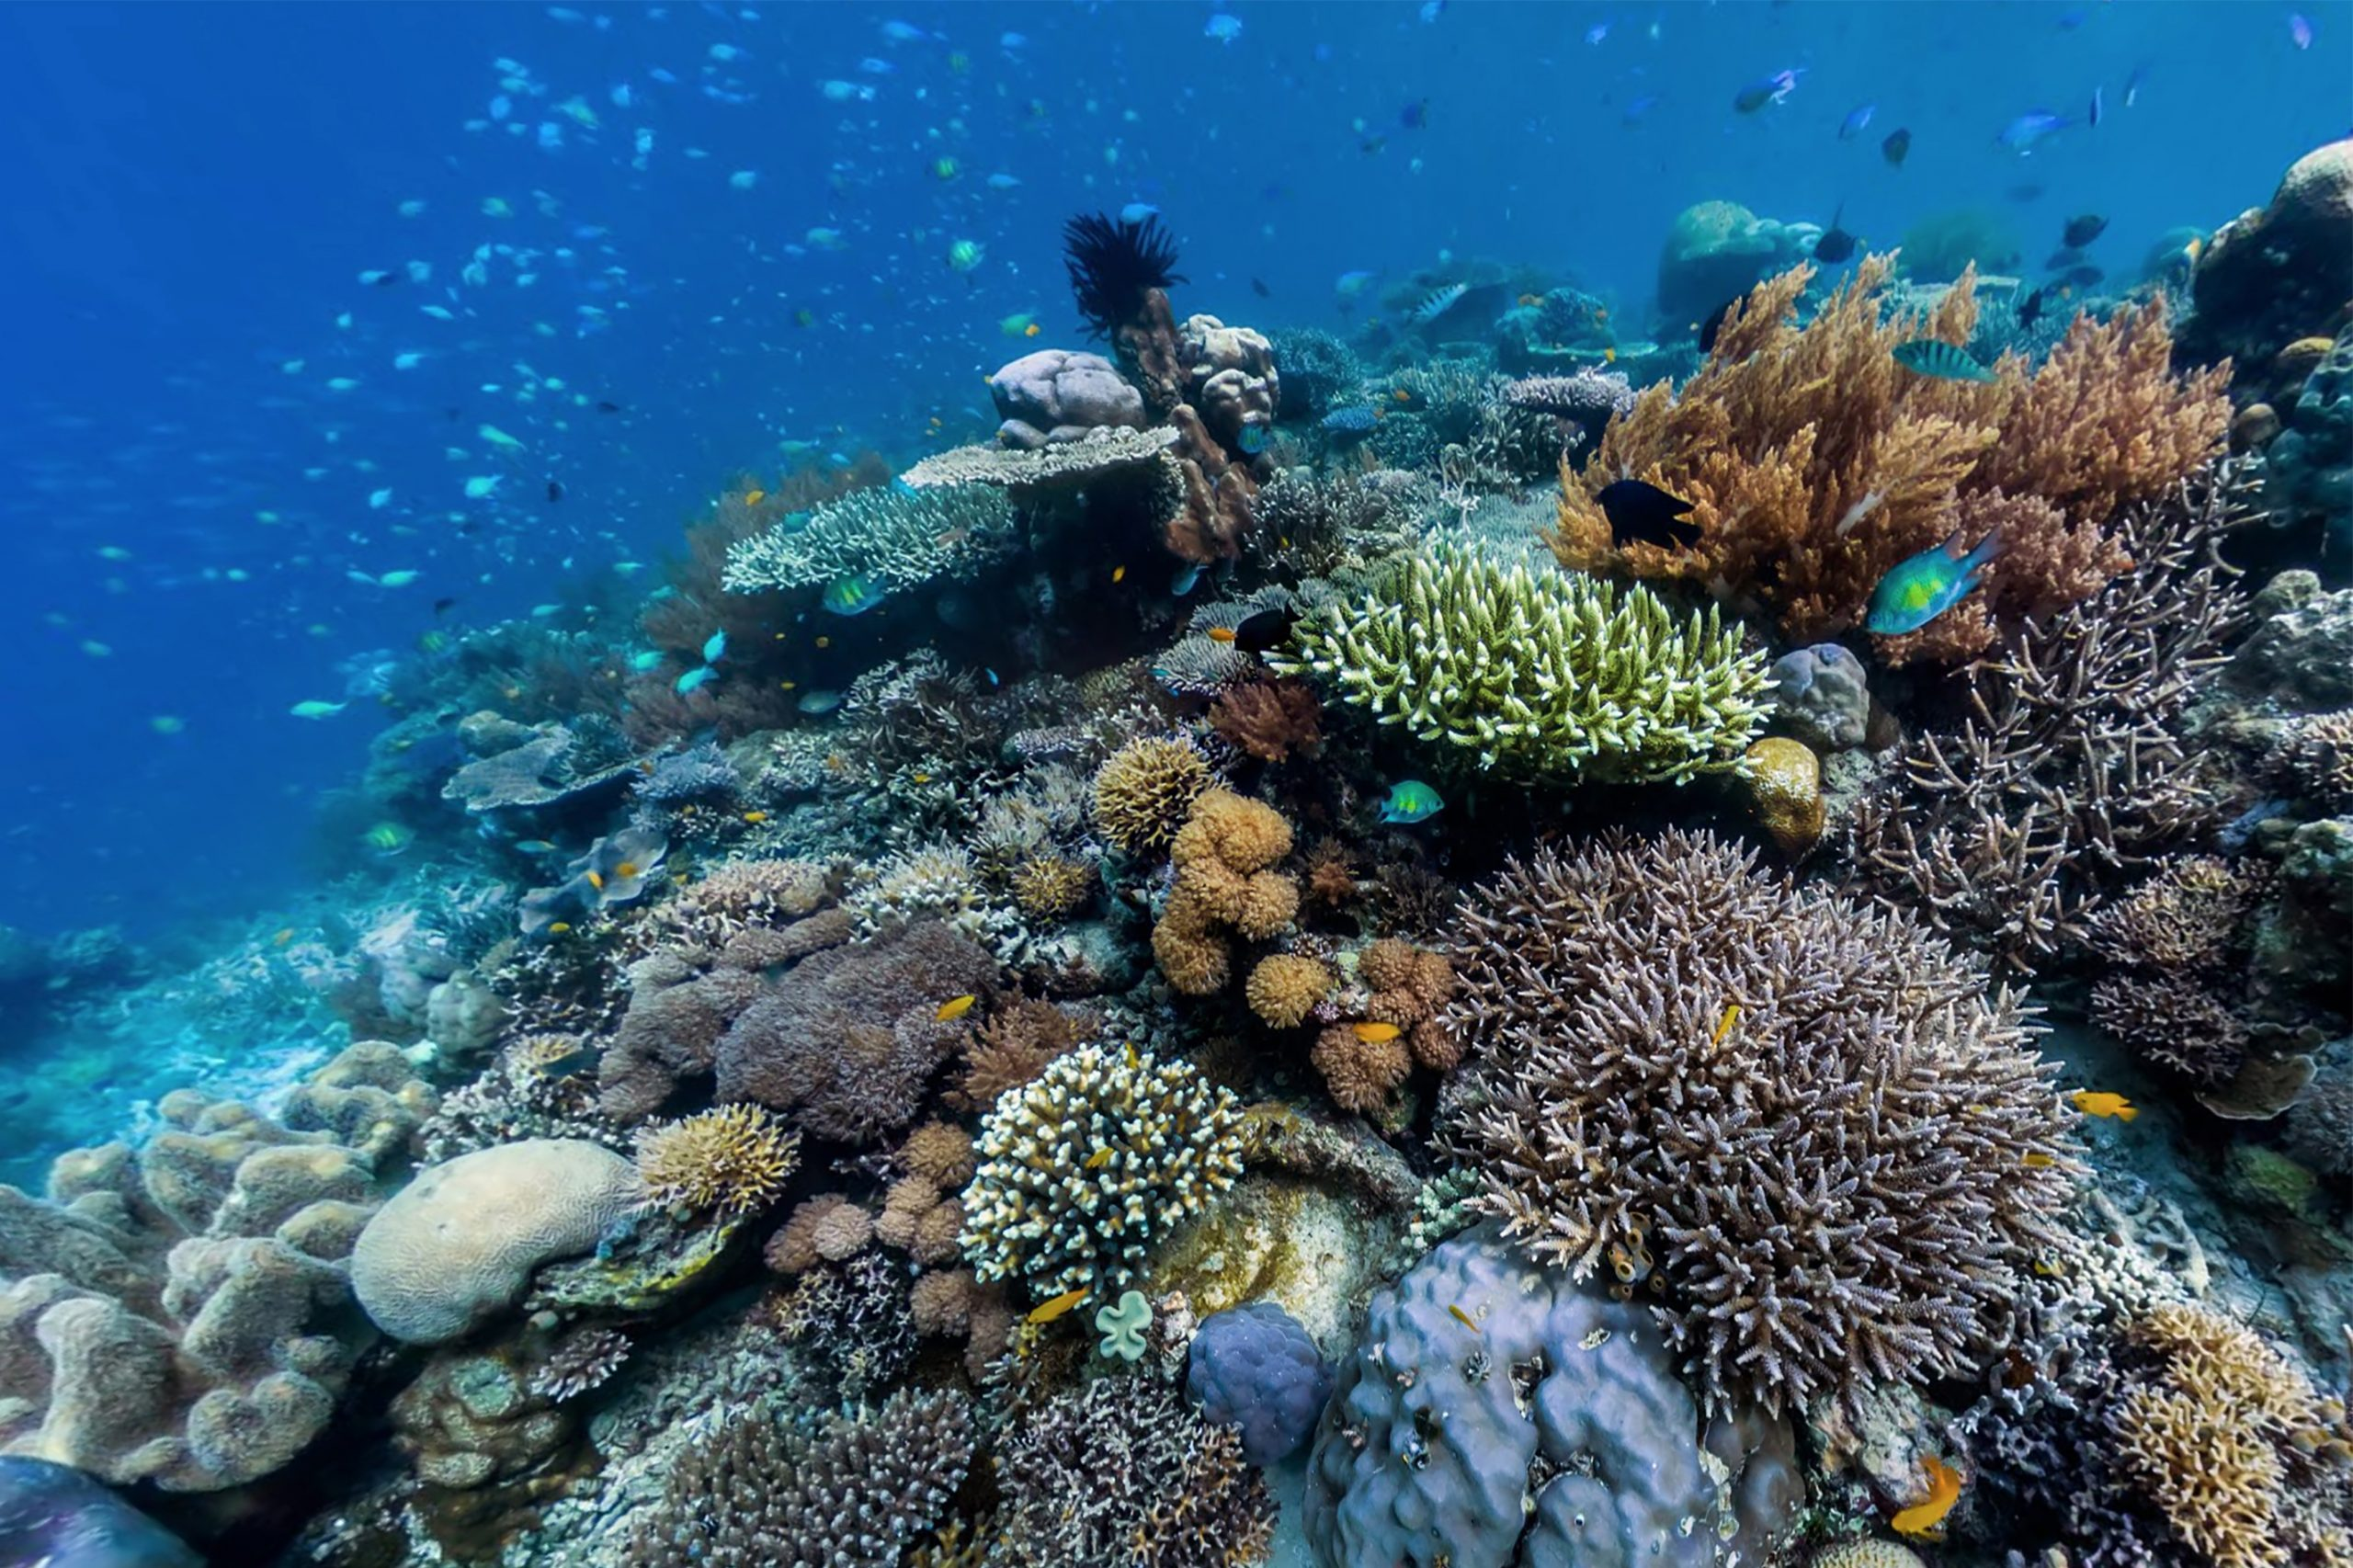 Nature Foundation conducts annual scientific assessments of the Islands coral reefs using GCRMN standards